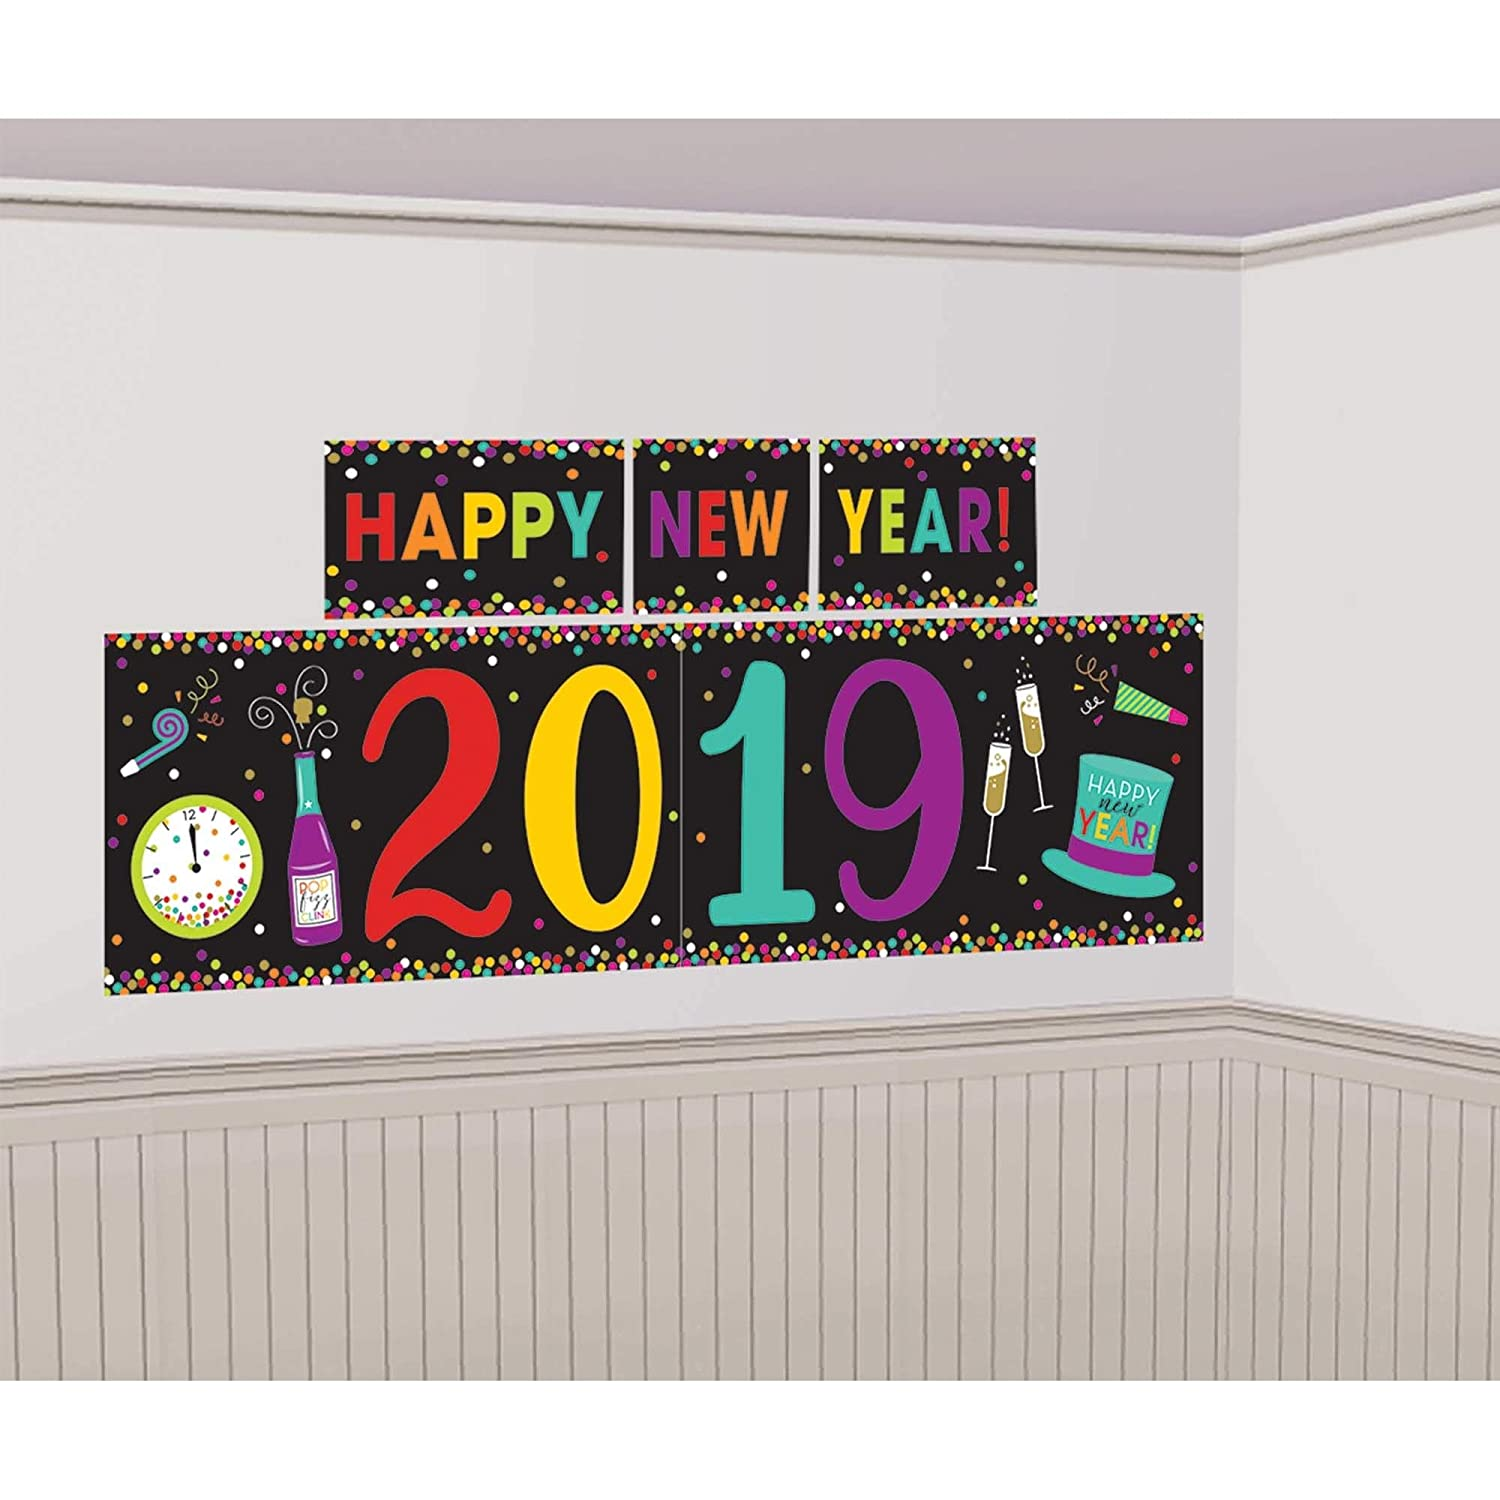 1 Plastic Banner 16 H x 65 W Combined 1 Plastic Banner 32 1//2 H x 118 W 5 pieces in a package Multicolored Amscan 670817 decoration Contains